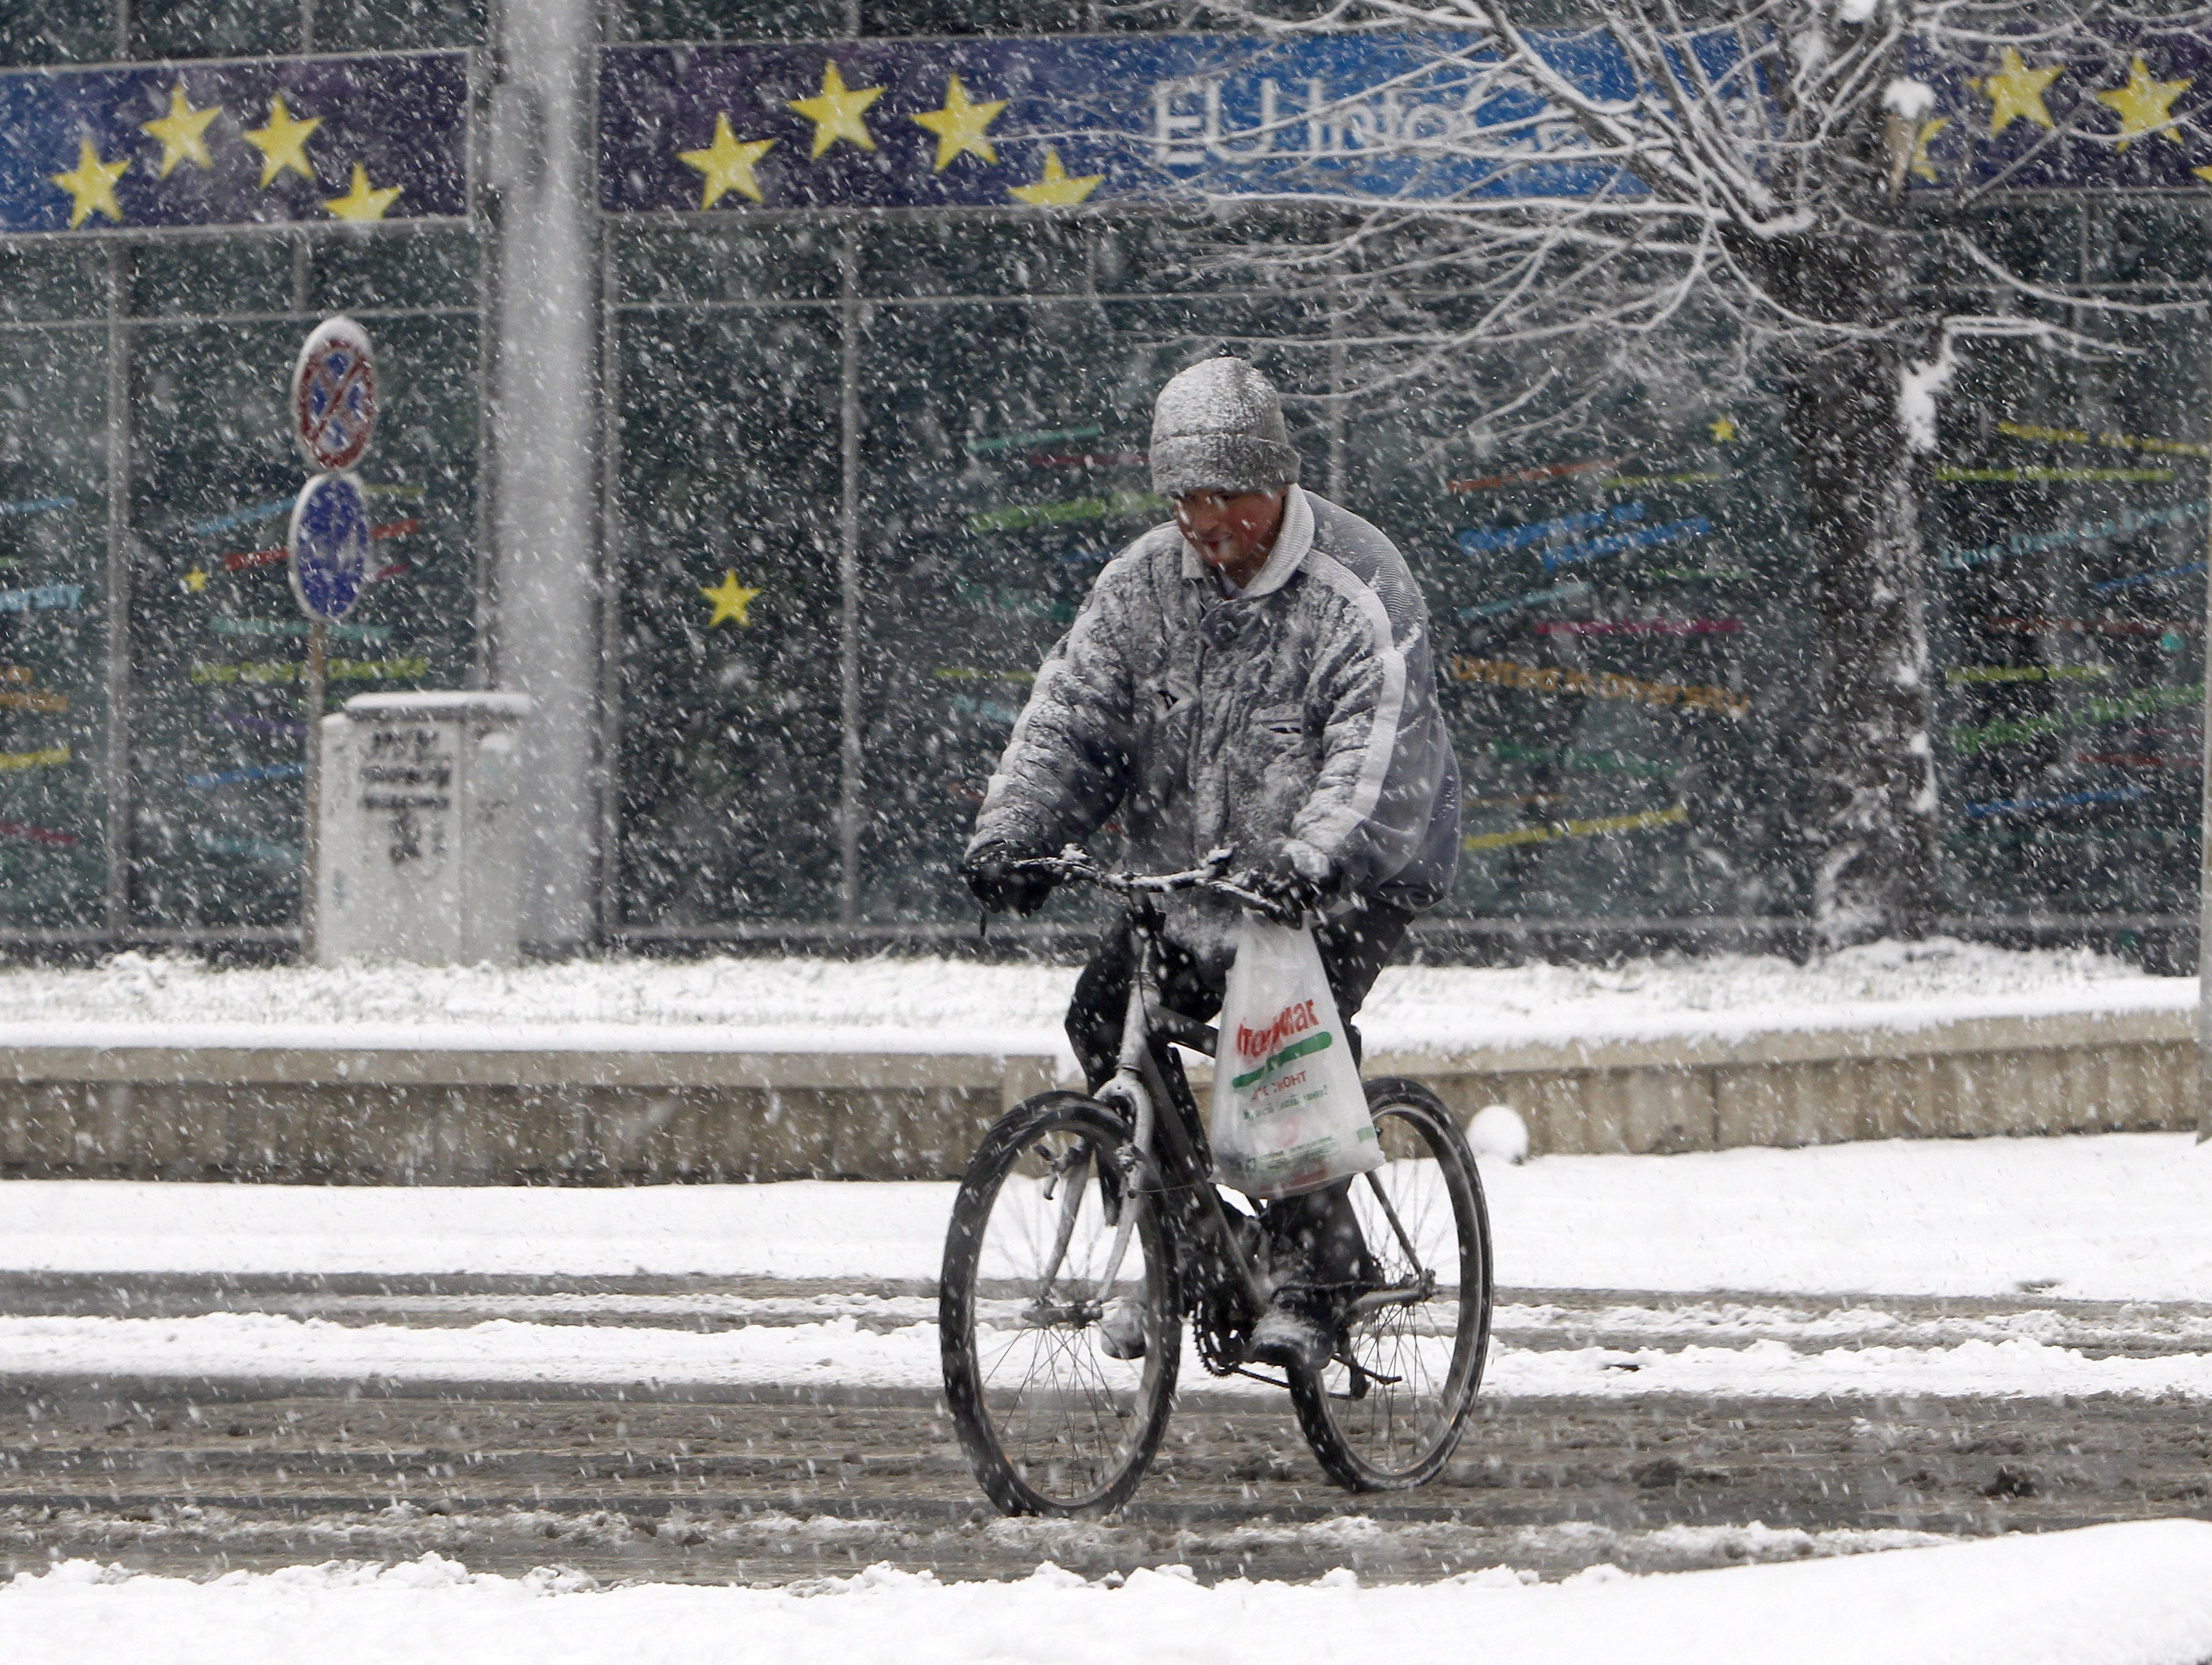 How to bike safely in wet weather